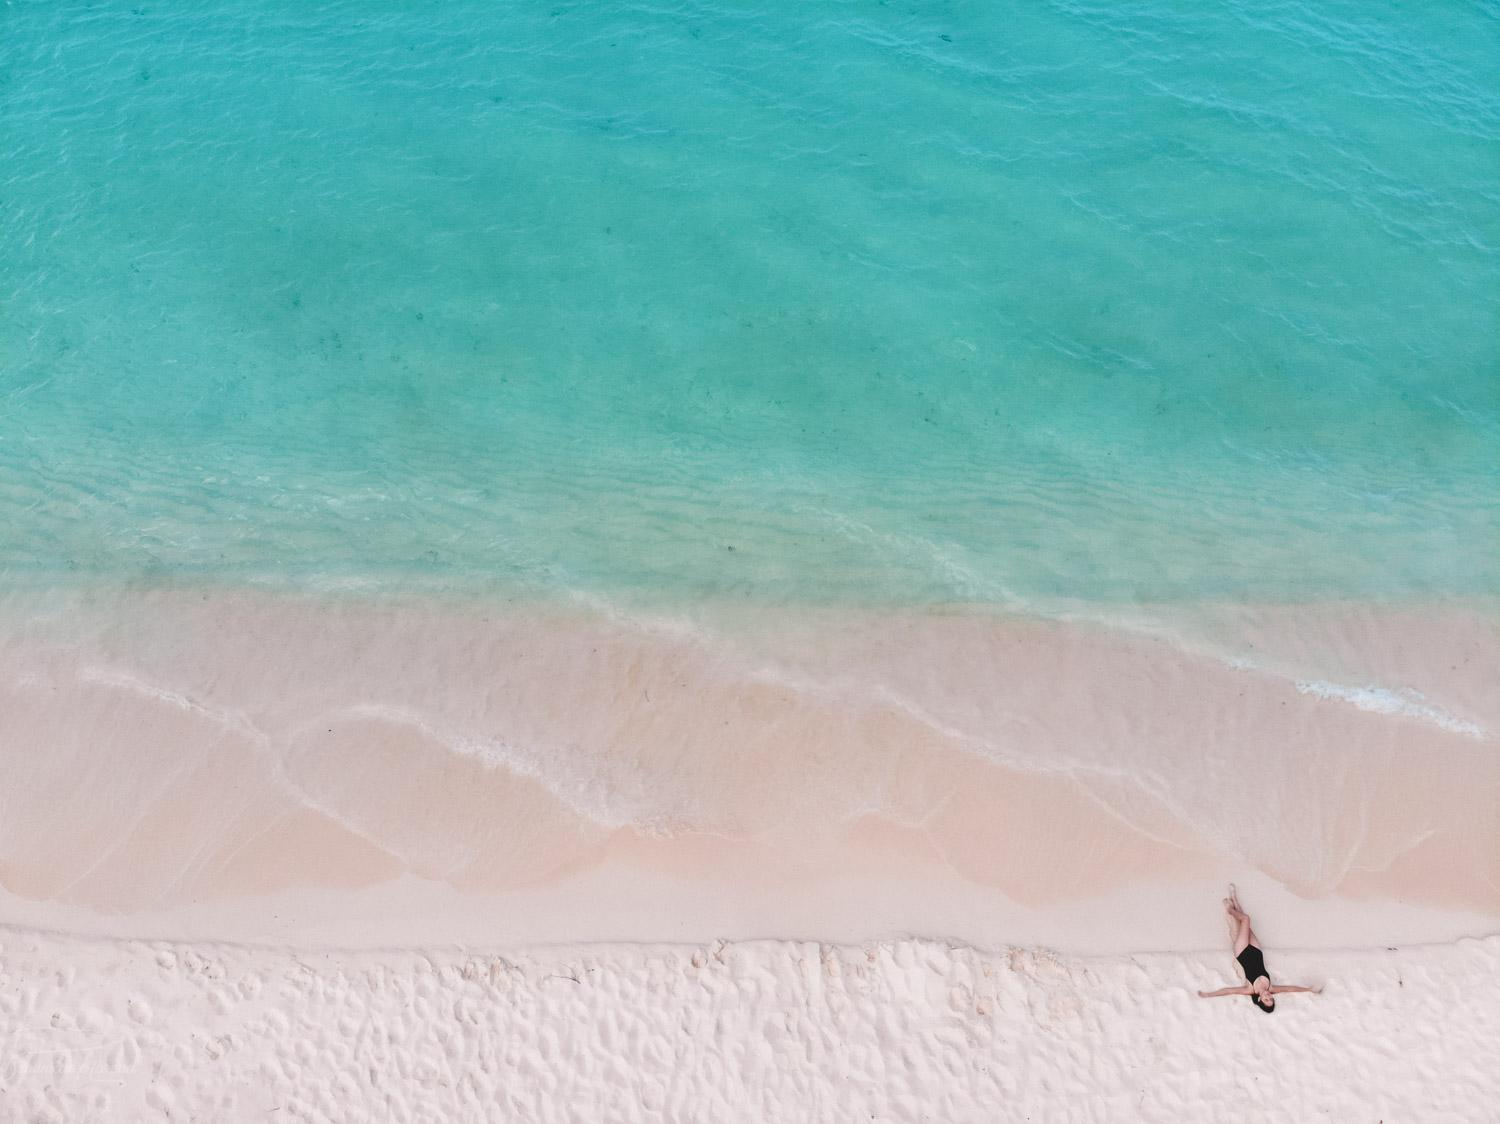 The beautiful white sand and turquoise water of bahia de las aguilas beach